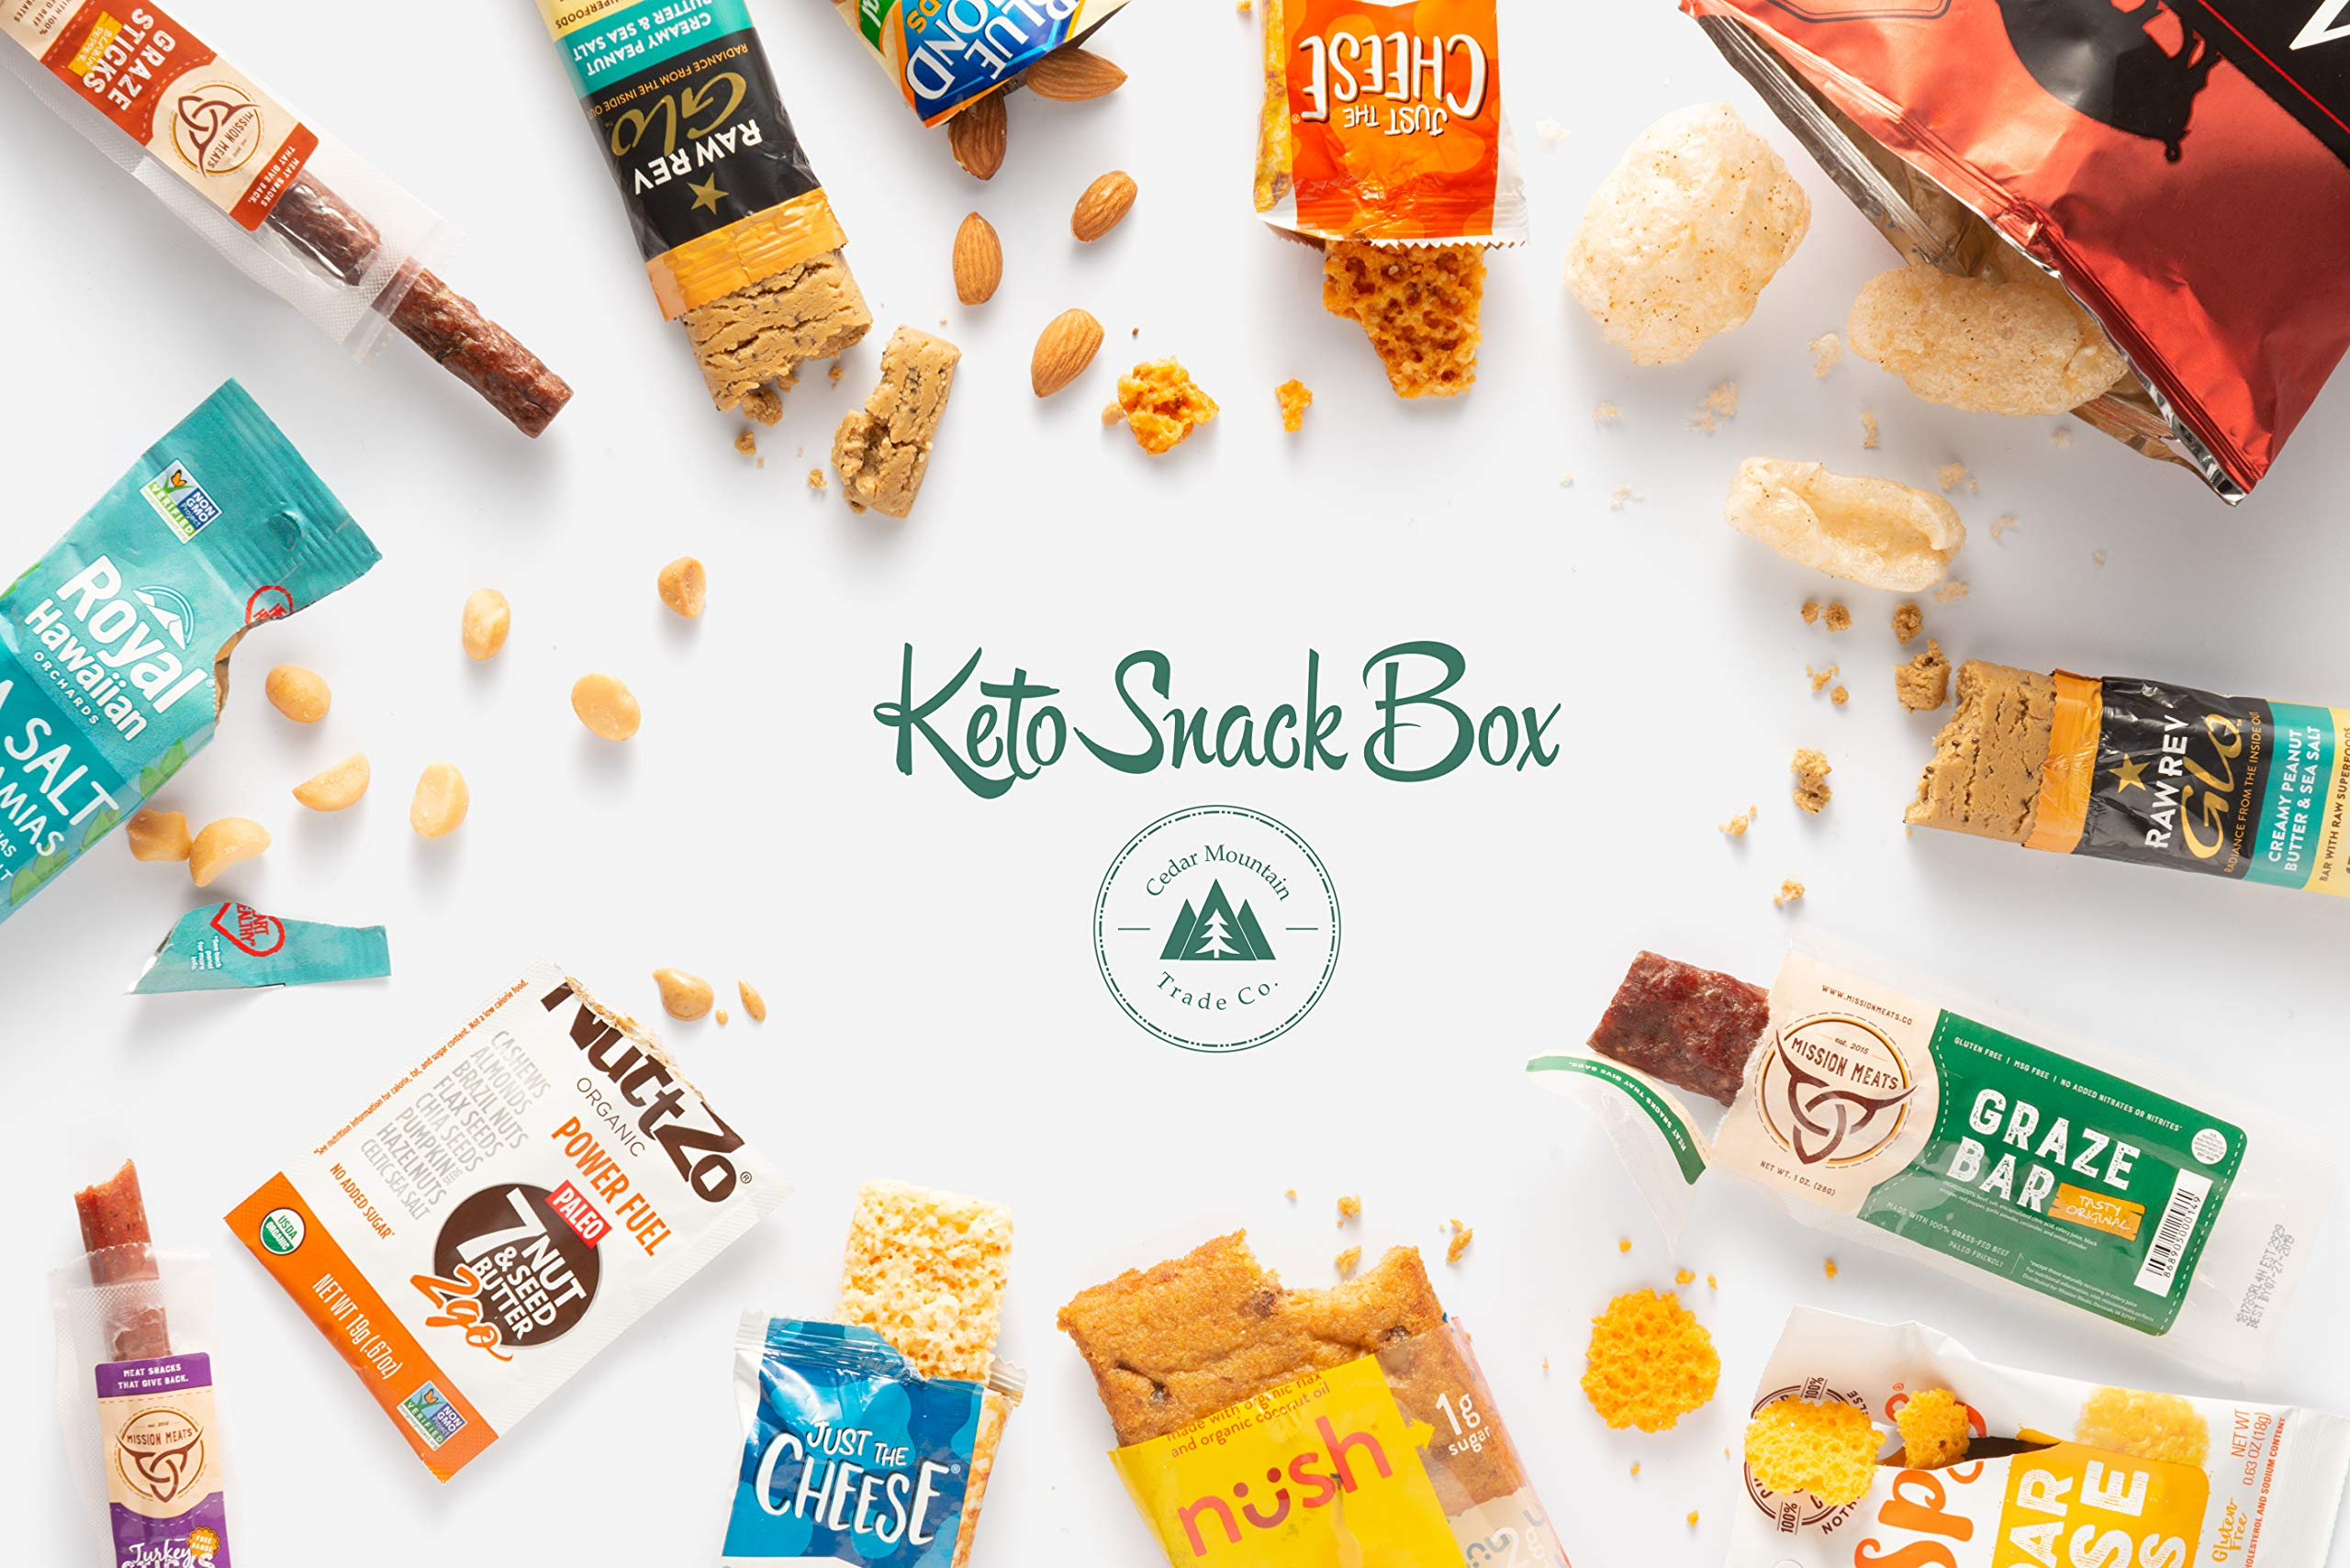 Keto Snack Box (40 Count)-Ultra Low Carb Snacks-Ketogenic Friendly, Gluten Free, Low Sugar Healthy Keto Gift Box Variety Pack - Protein Bars, Pork Rinds, Cheese Crisps, Nut, Jerky, and More by Cedar Mountain Trade Co. (Image #3)